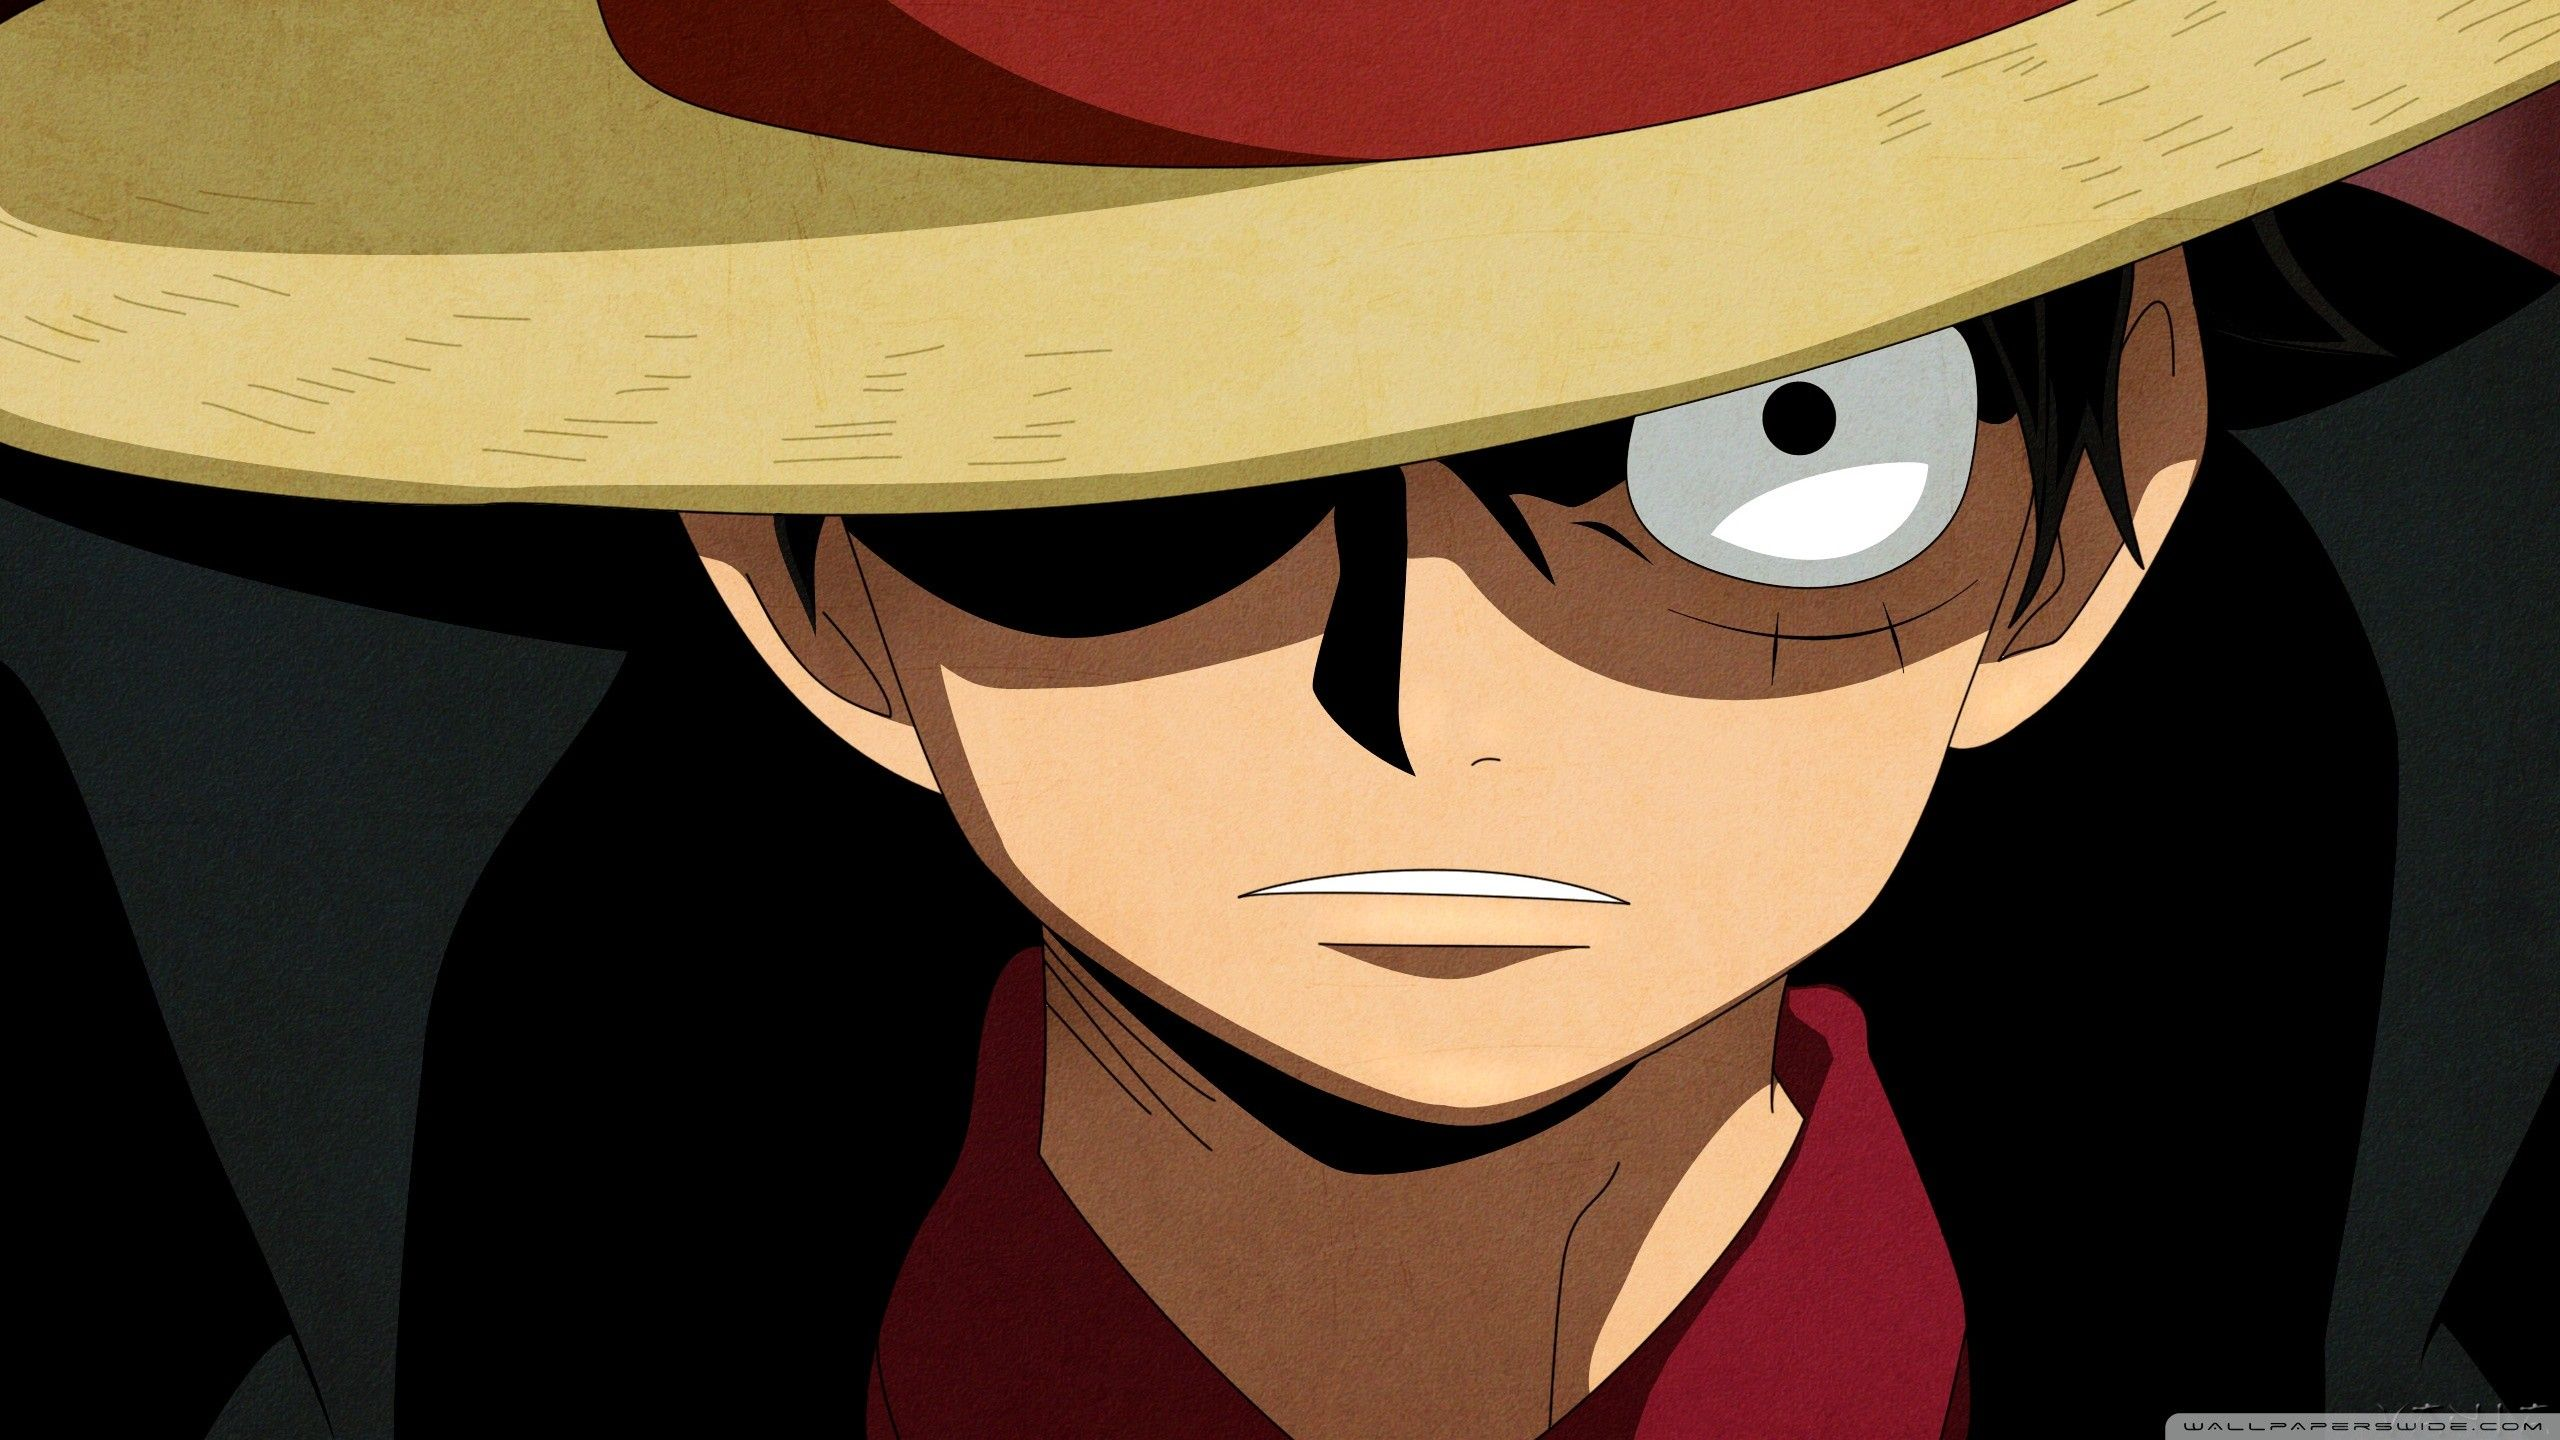 2560x1440 Standard Wall Papers One Piece Luffy Monkey D Luffy One Piece Anime